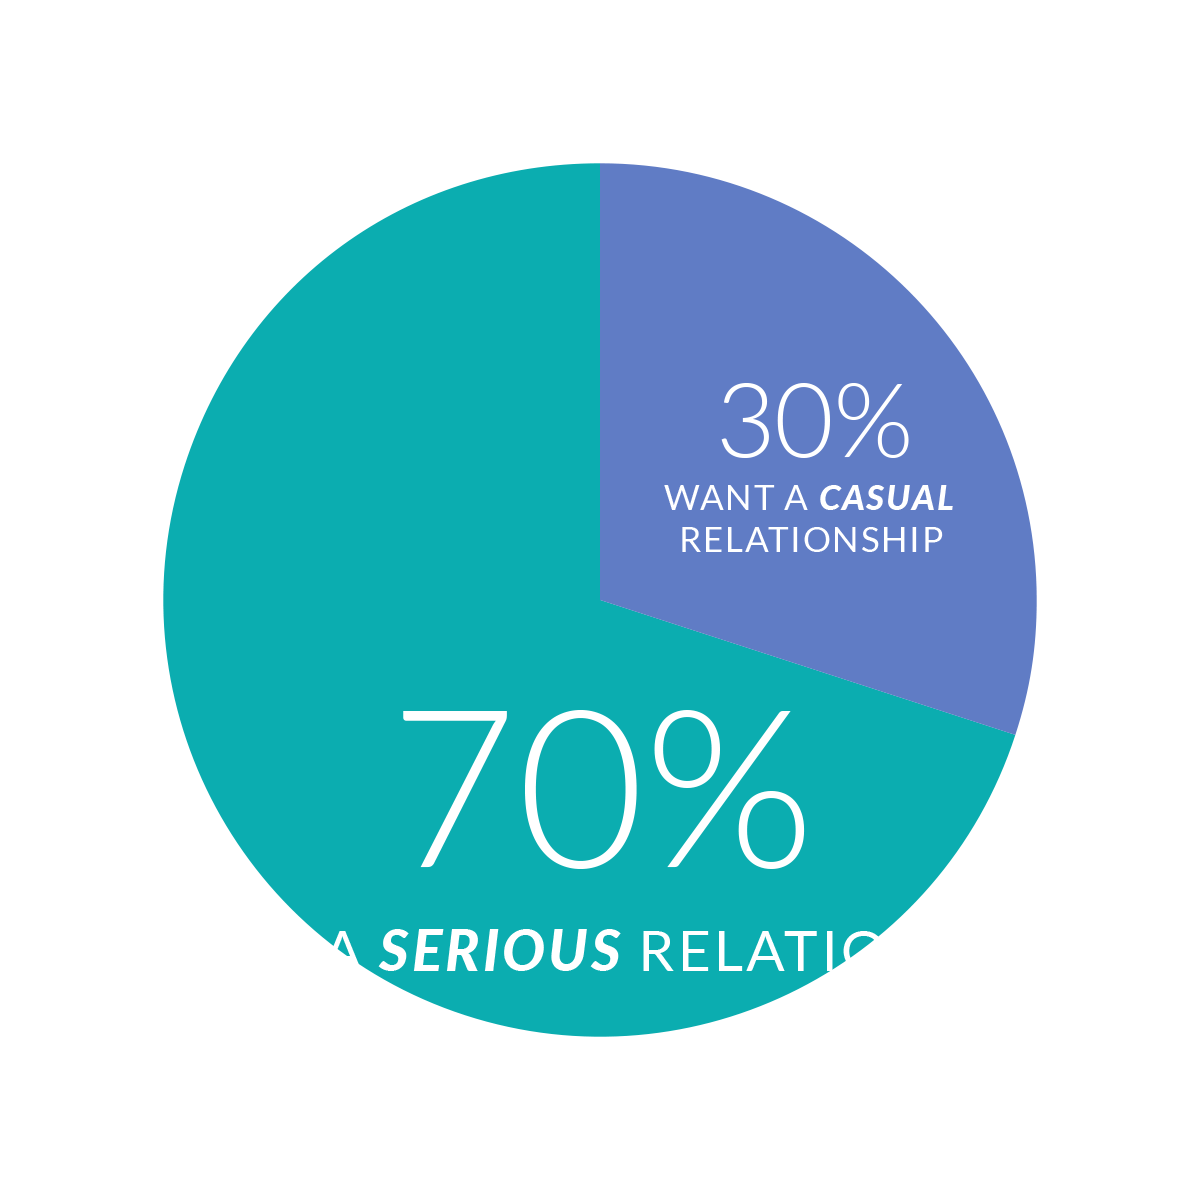 70% of singles want a serious relationship